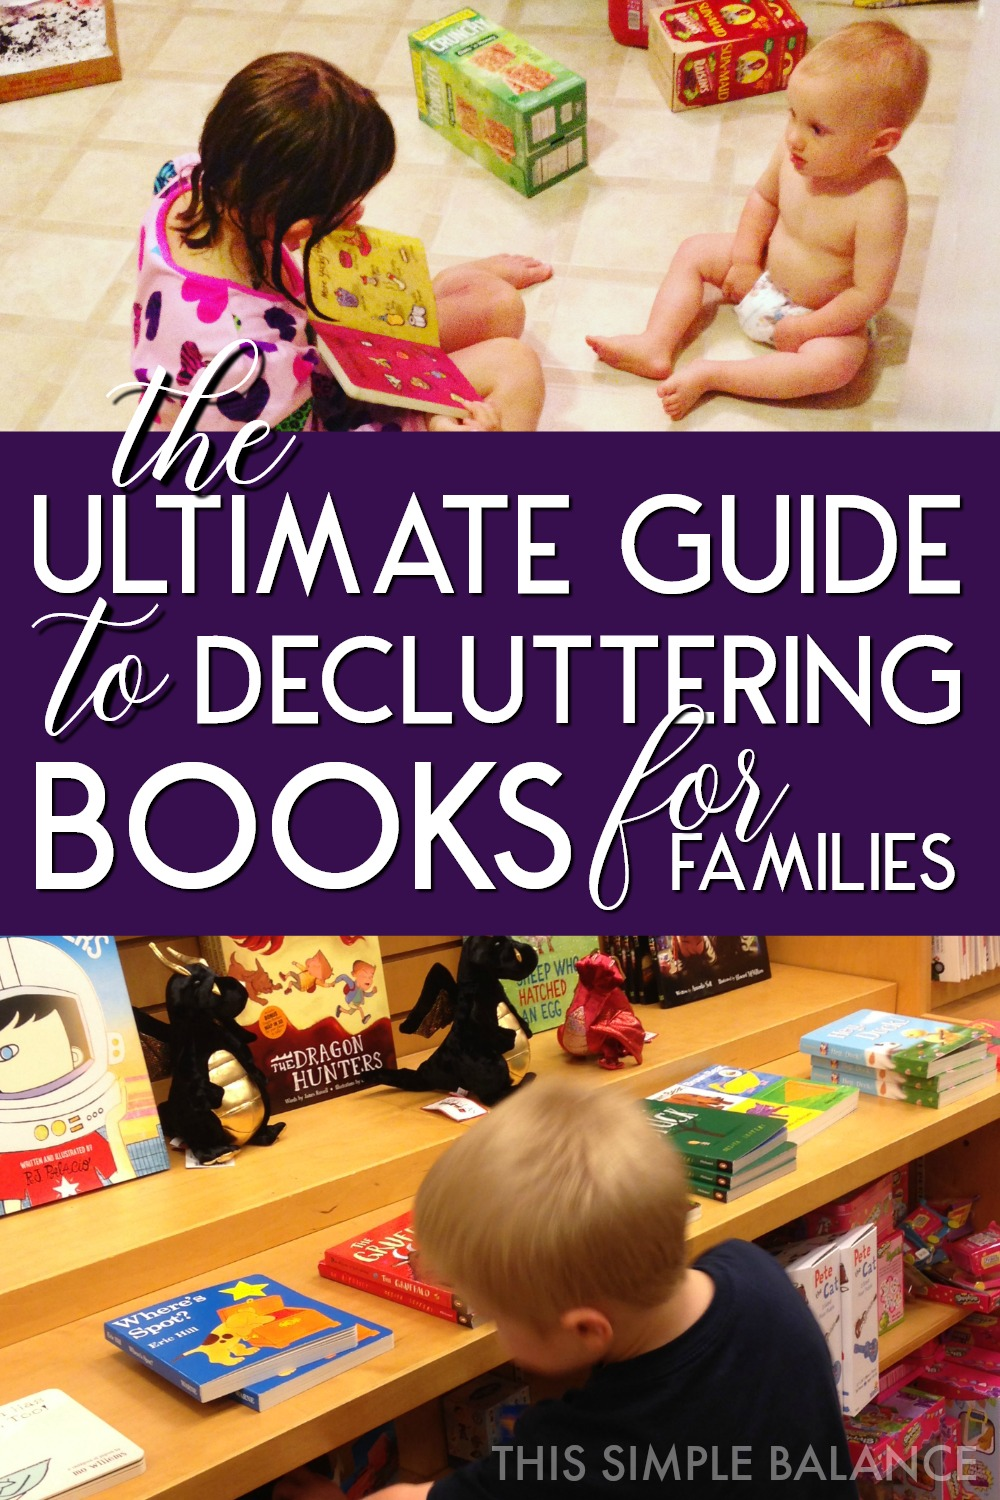 How to declutter books when you have kids: 6 fears parents face (and why you needn't worry), and 7 helpful questions for decluttering your books